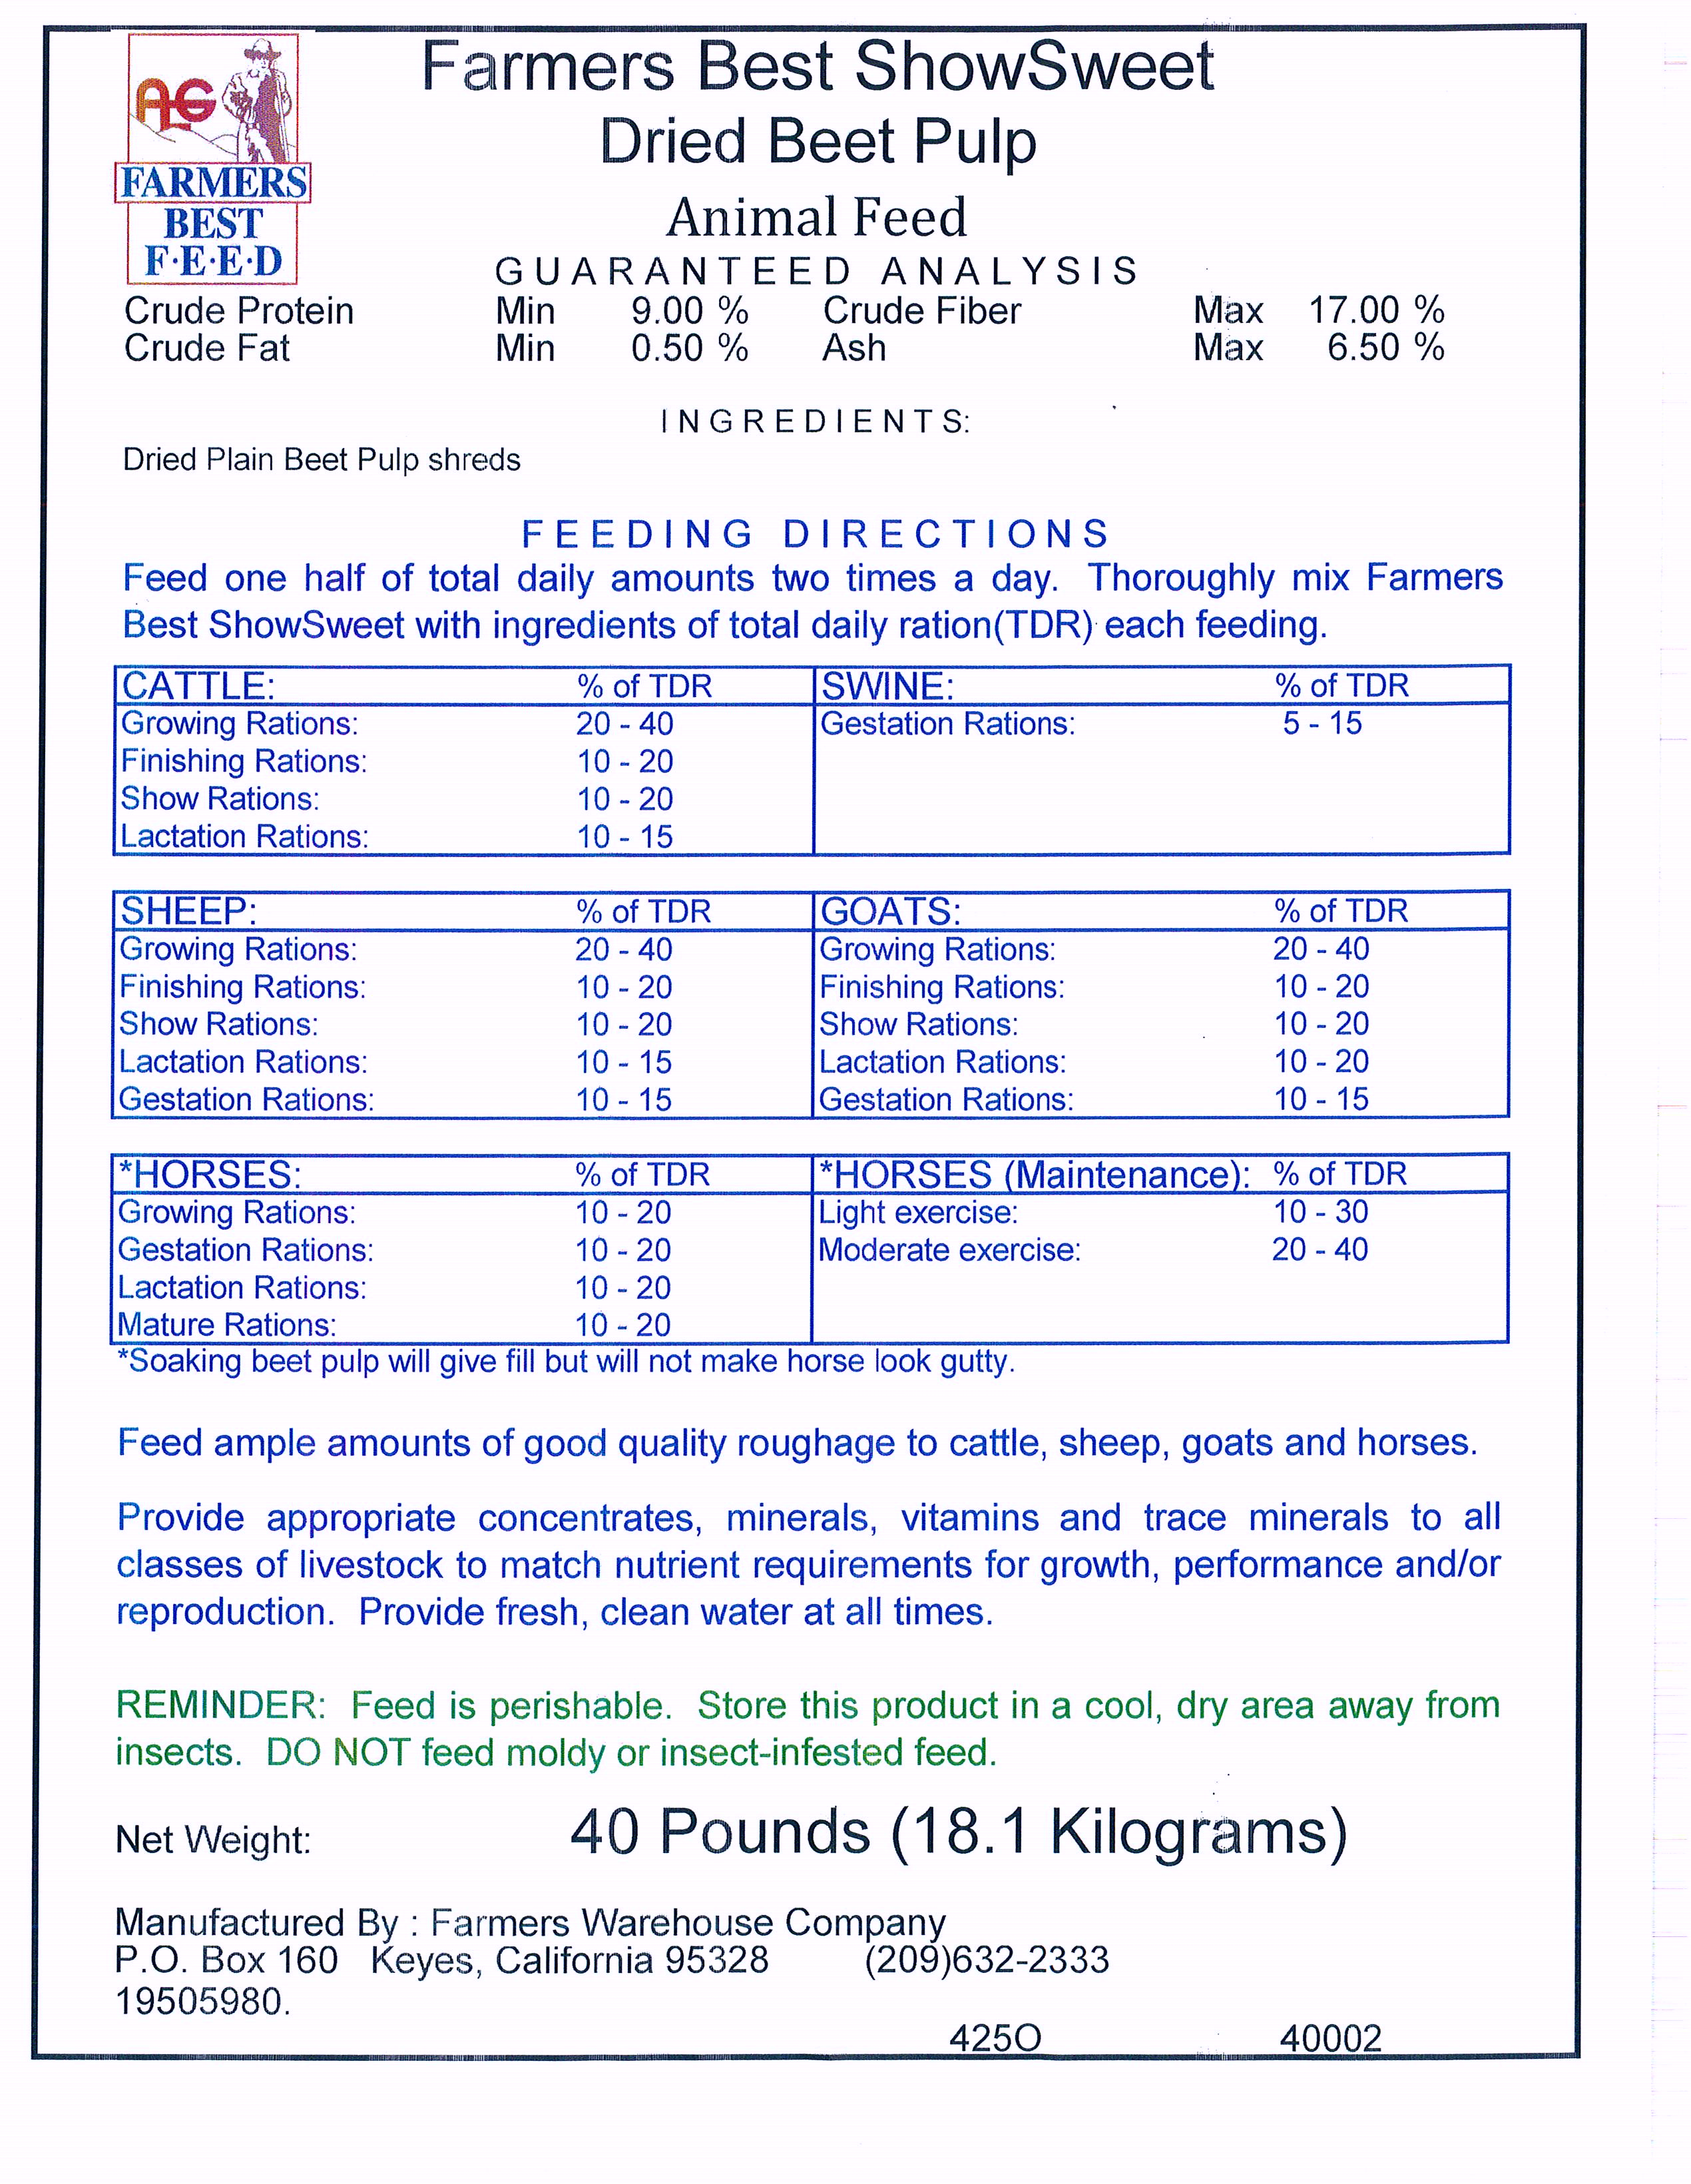 Products - Farmers Warehouse - High-Quality Animal Feed